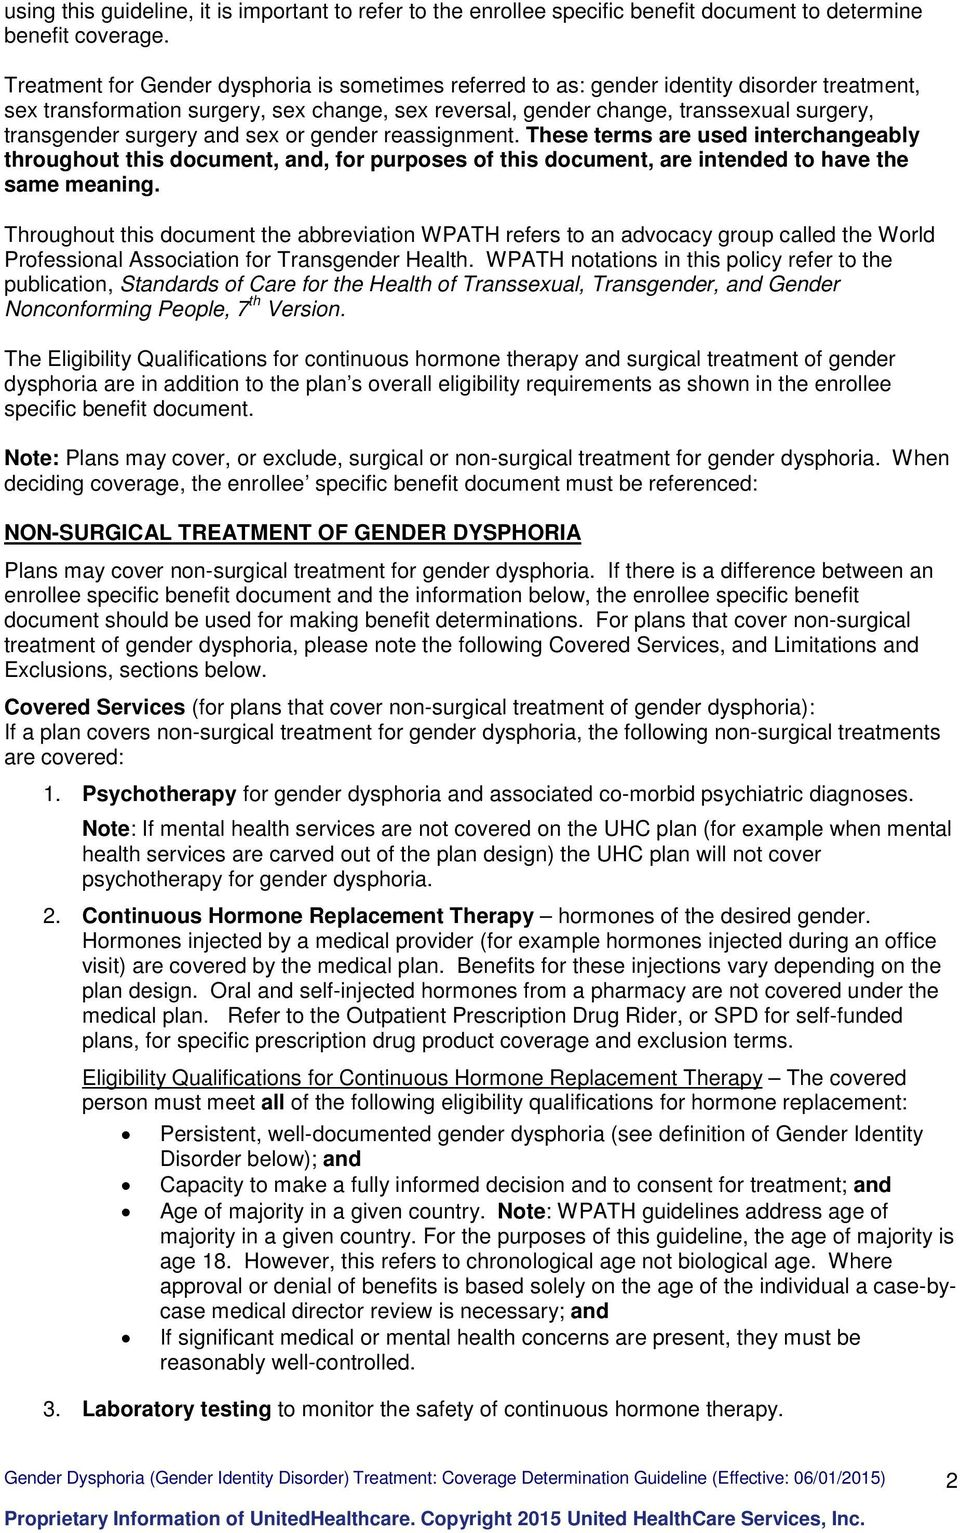 Standards of care for the health of transsexual surgery